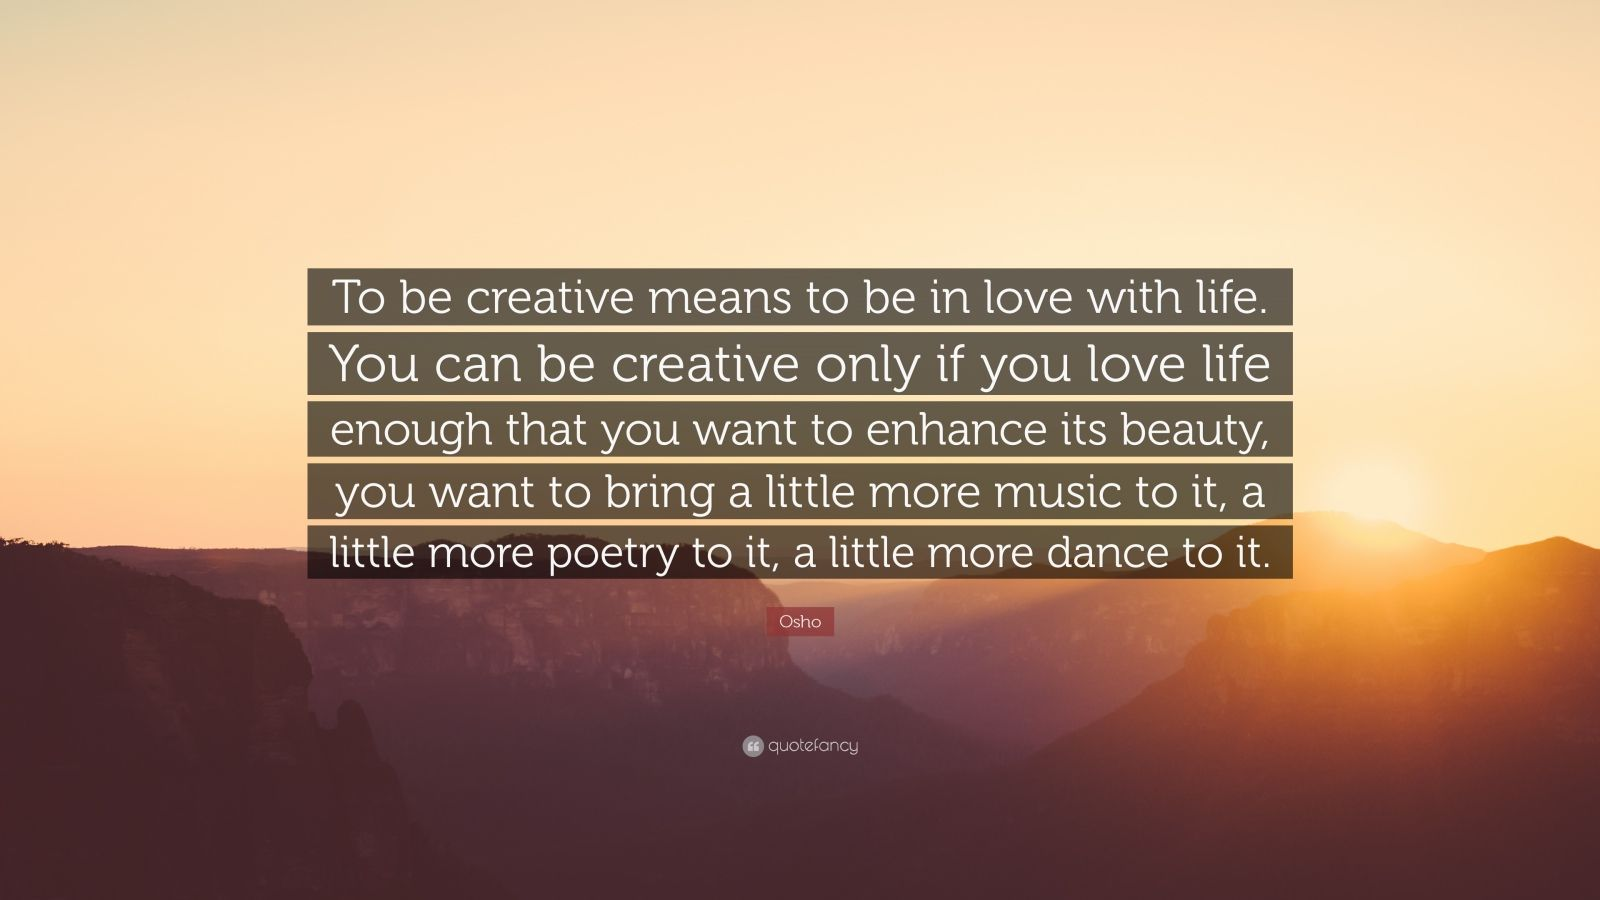 what creativity means to the poet